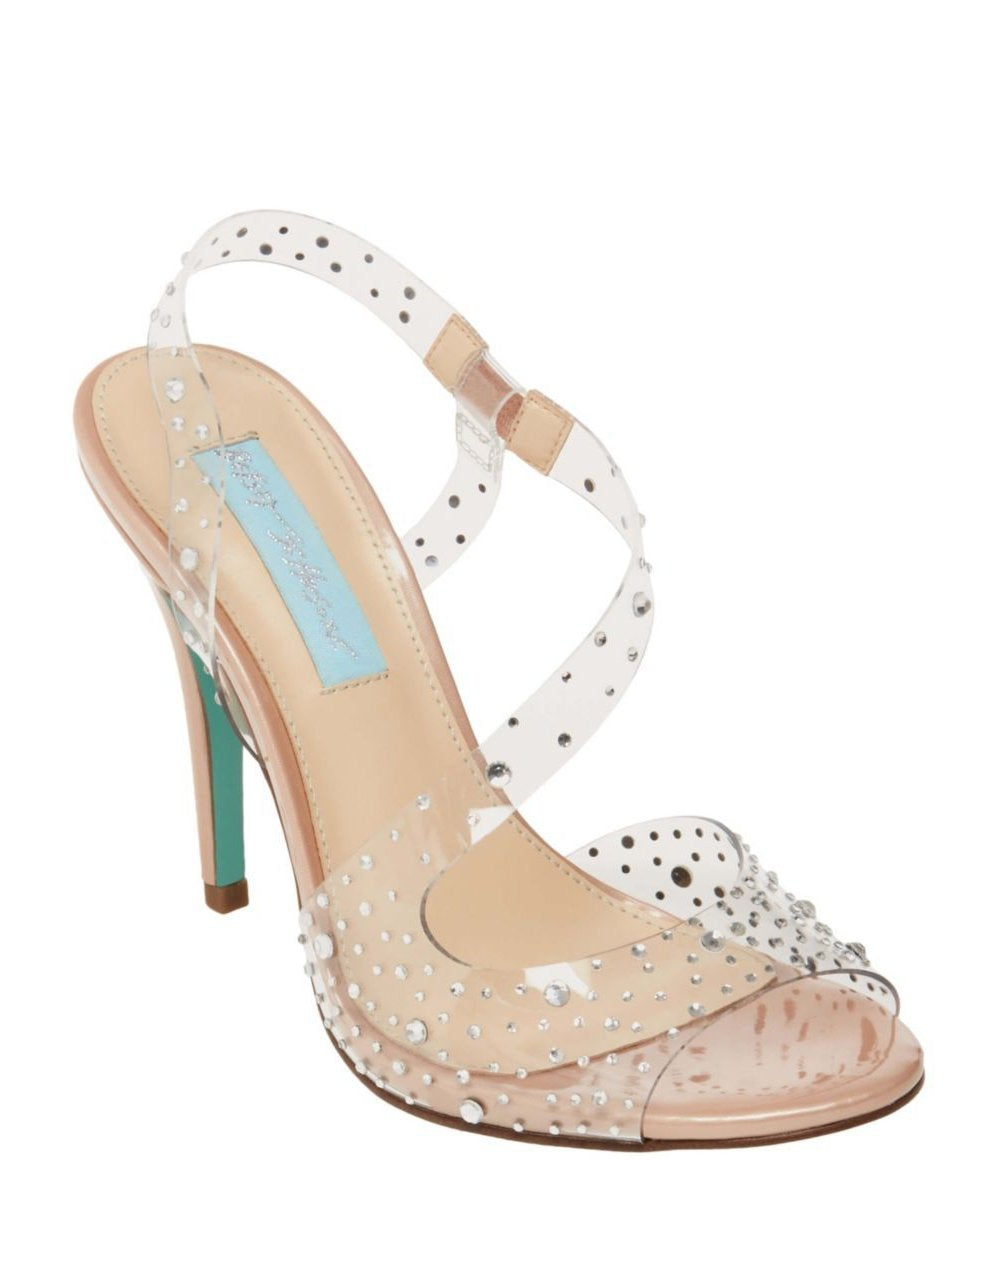 SB-FEY NUDE PATENT - SHOES - Betsey Johnson